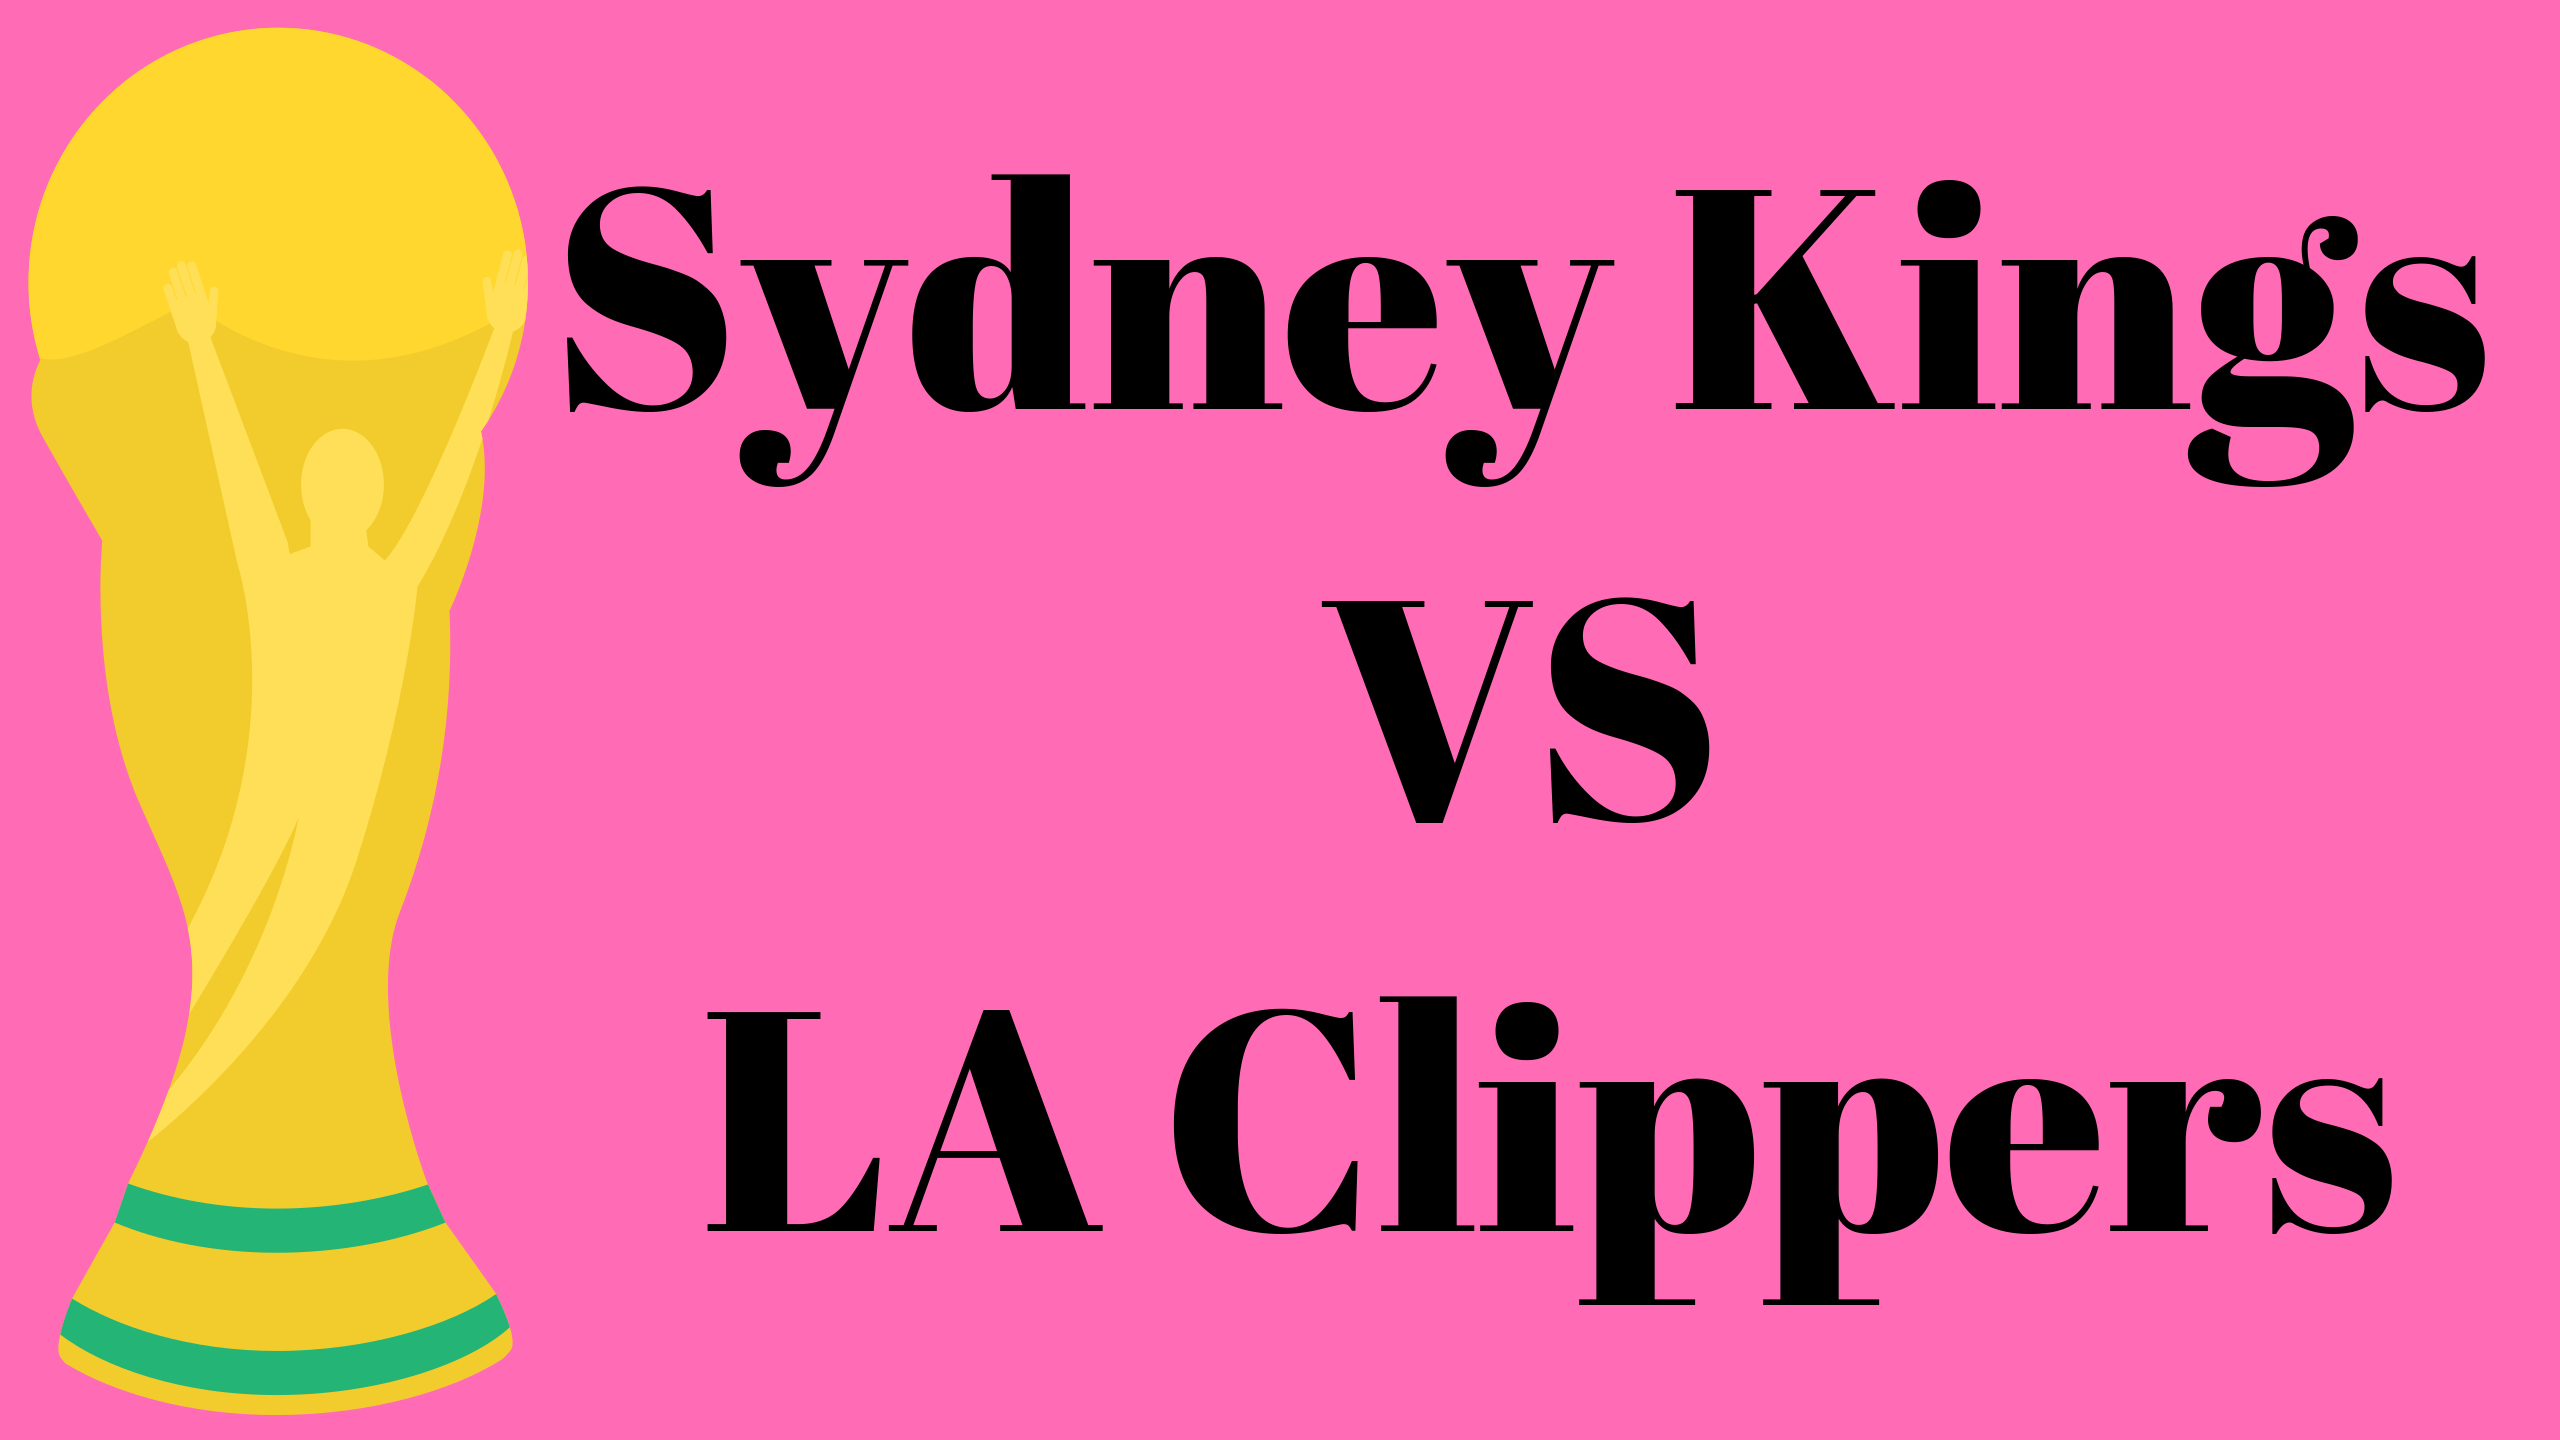 Sydney Kings VS LA Clippers